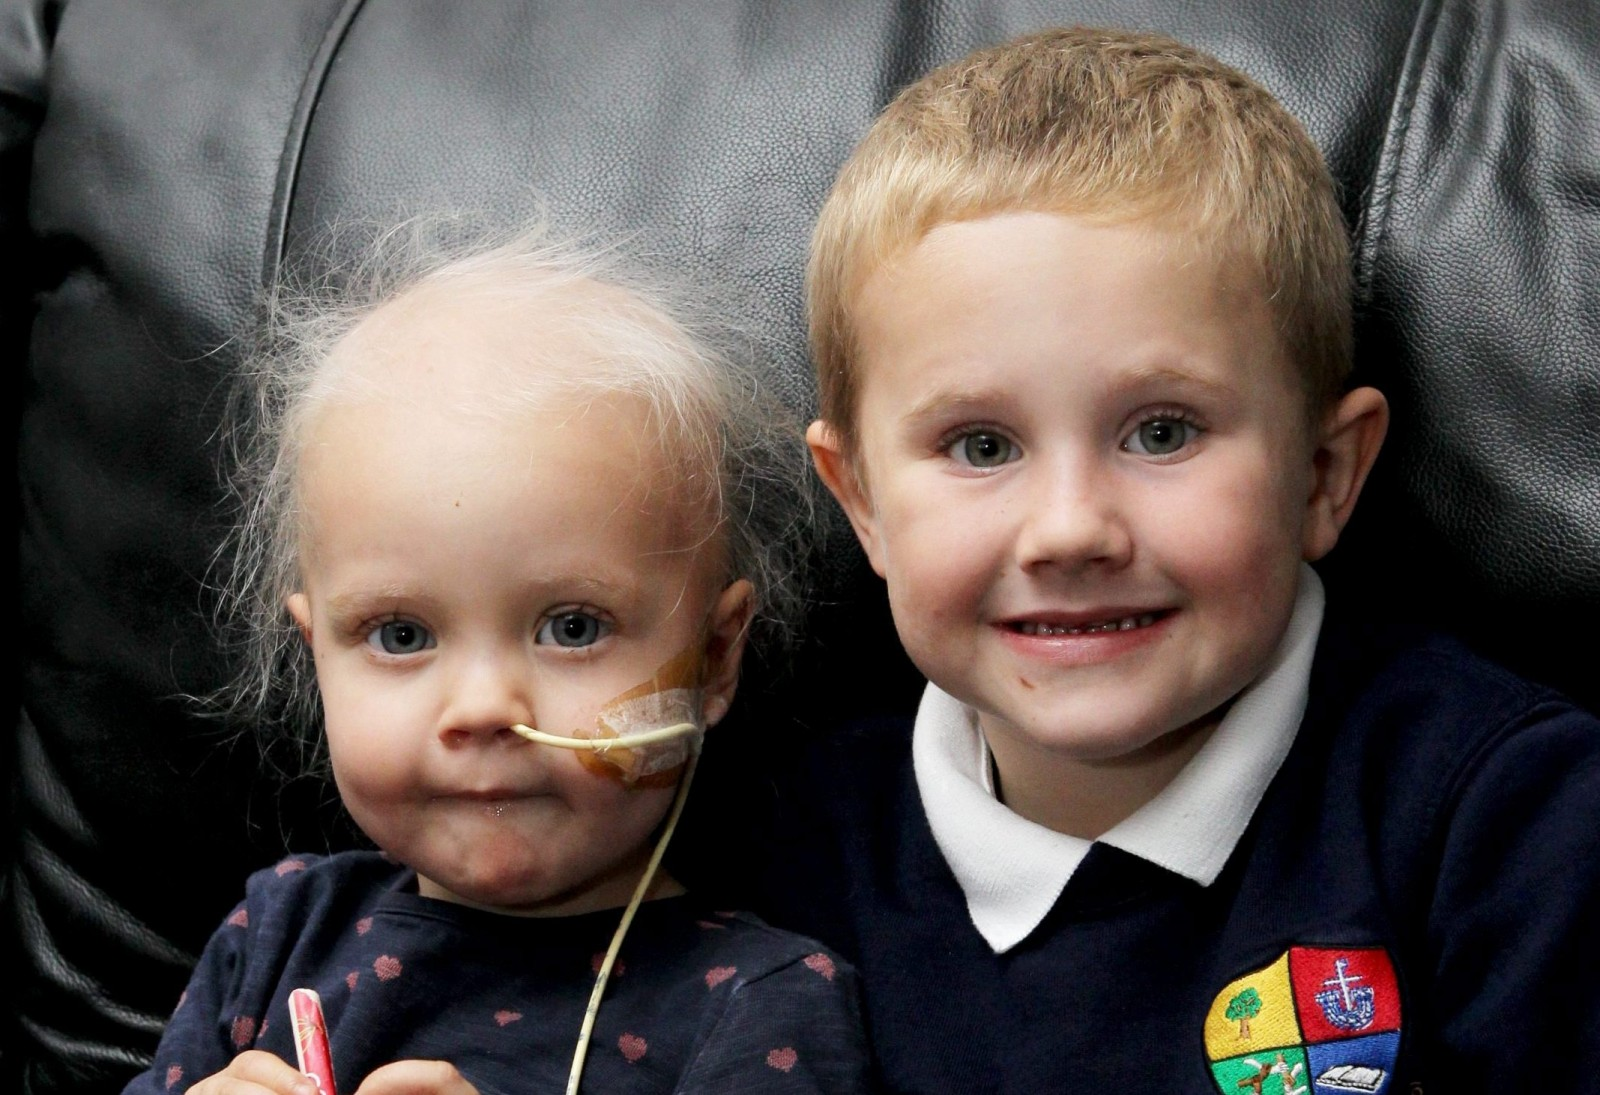 Huge success of celeb campaign means little Ruby gets the chance to fight for life